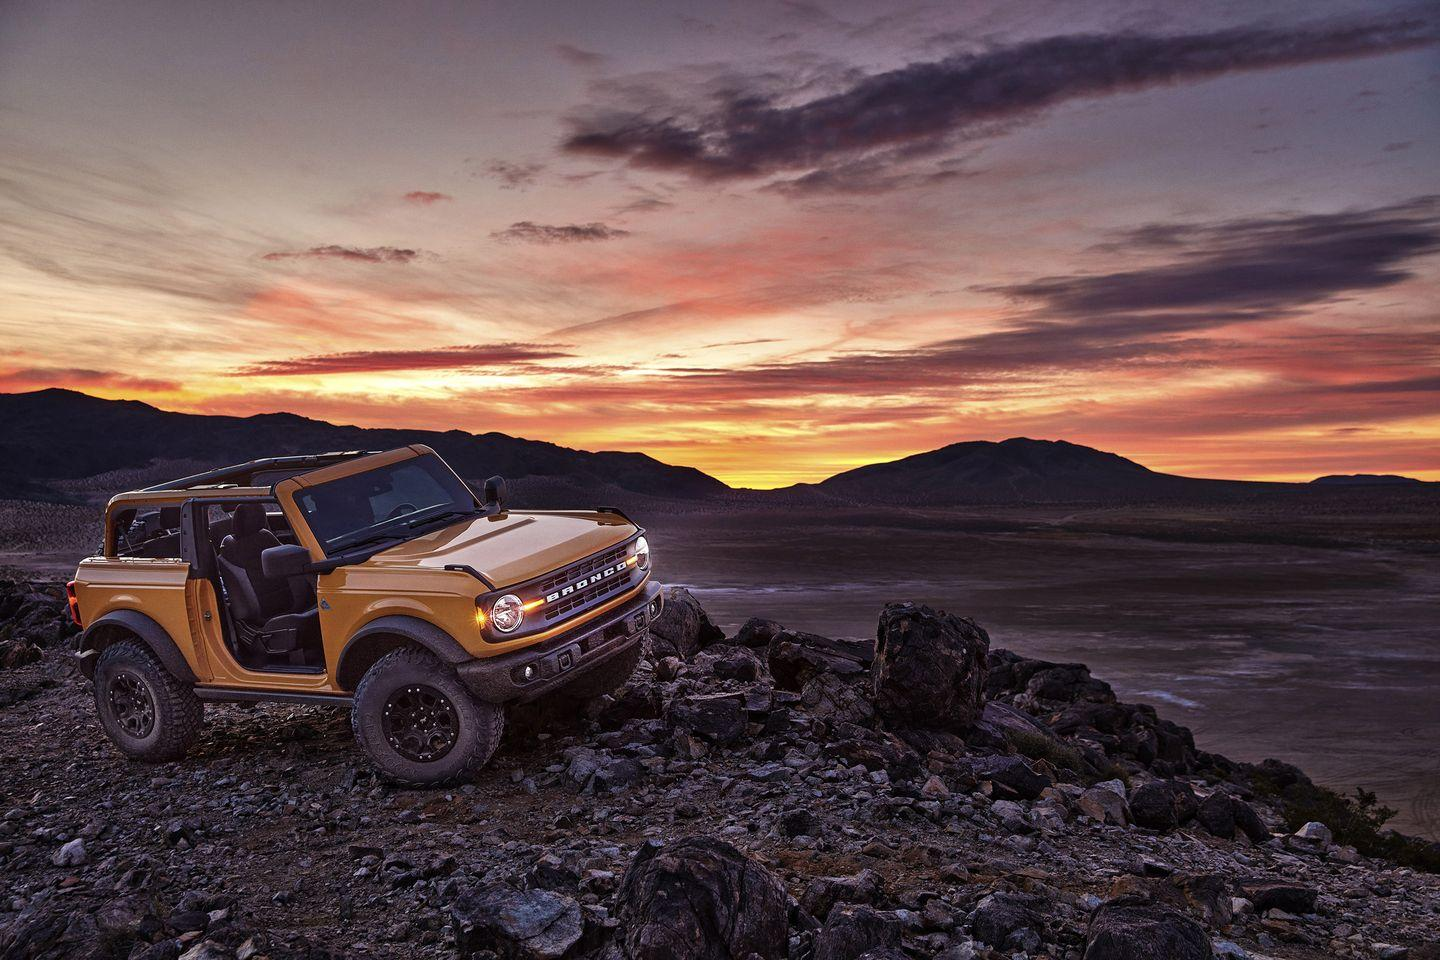 <p>We think Ford hit the nail on the head with the Bronco's exterior design. It looks retro yet modern, a perfect interpretation of what the Bronco might look like in the year 2020. There are squared-off body lines, round headlights, and plenty of muscular trim pieces. </p>